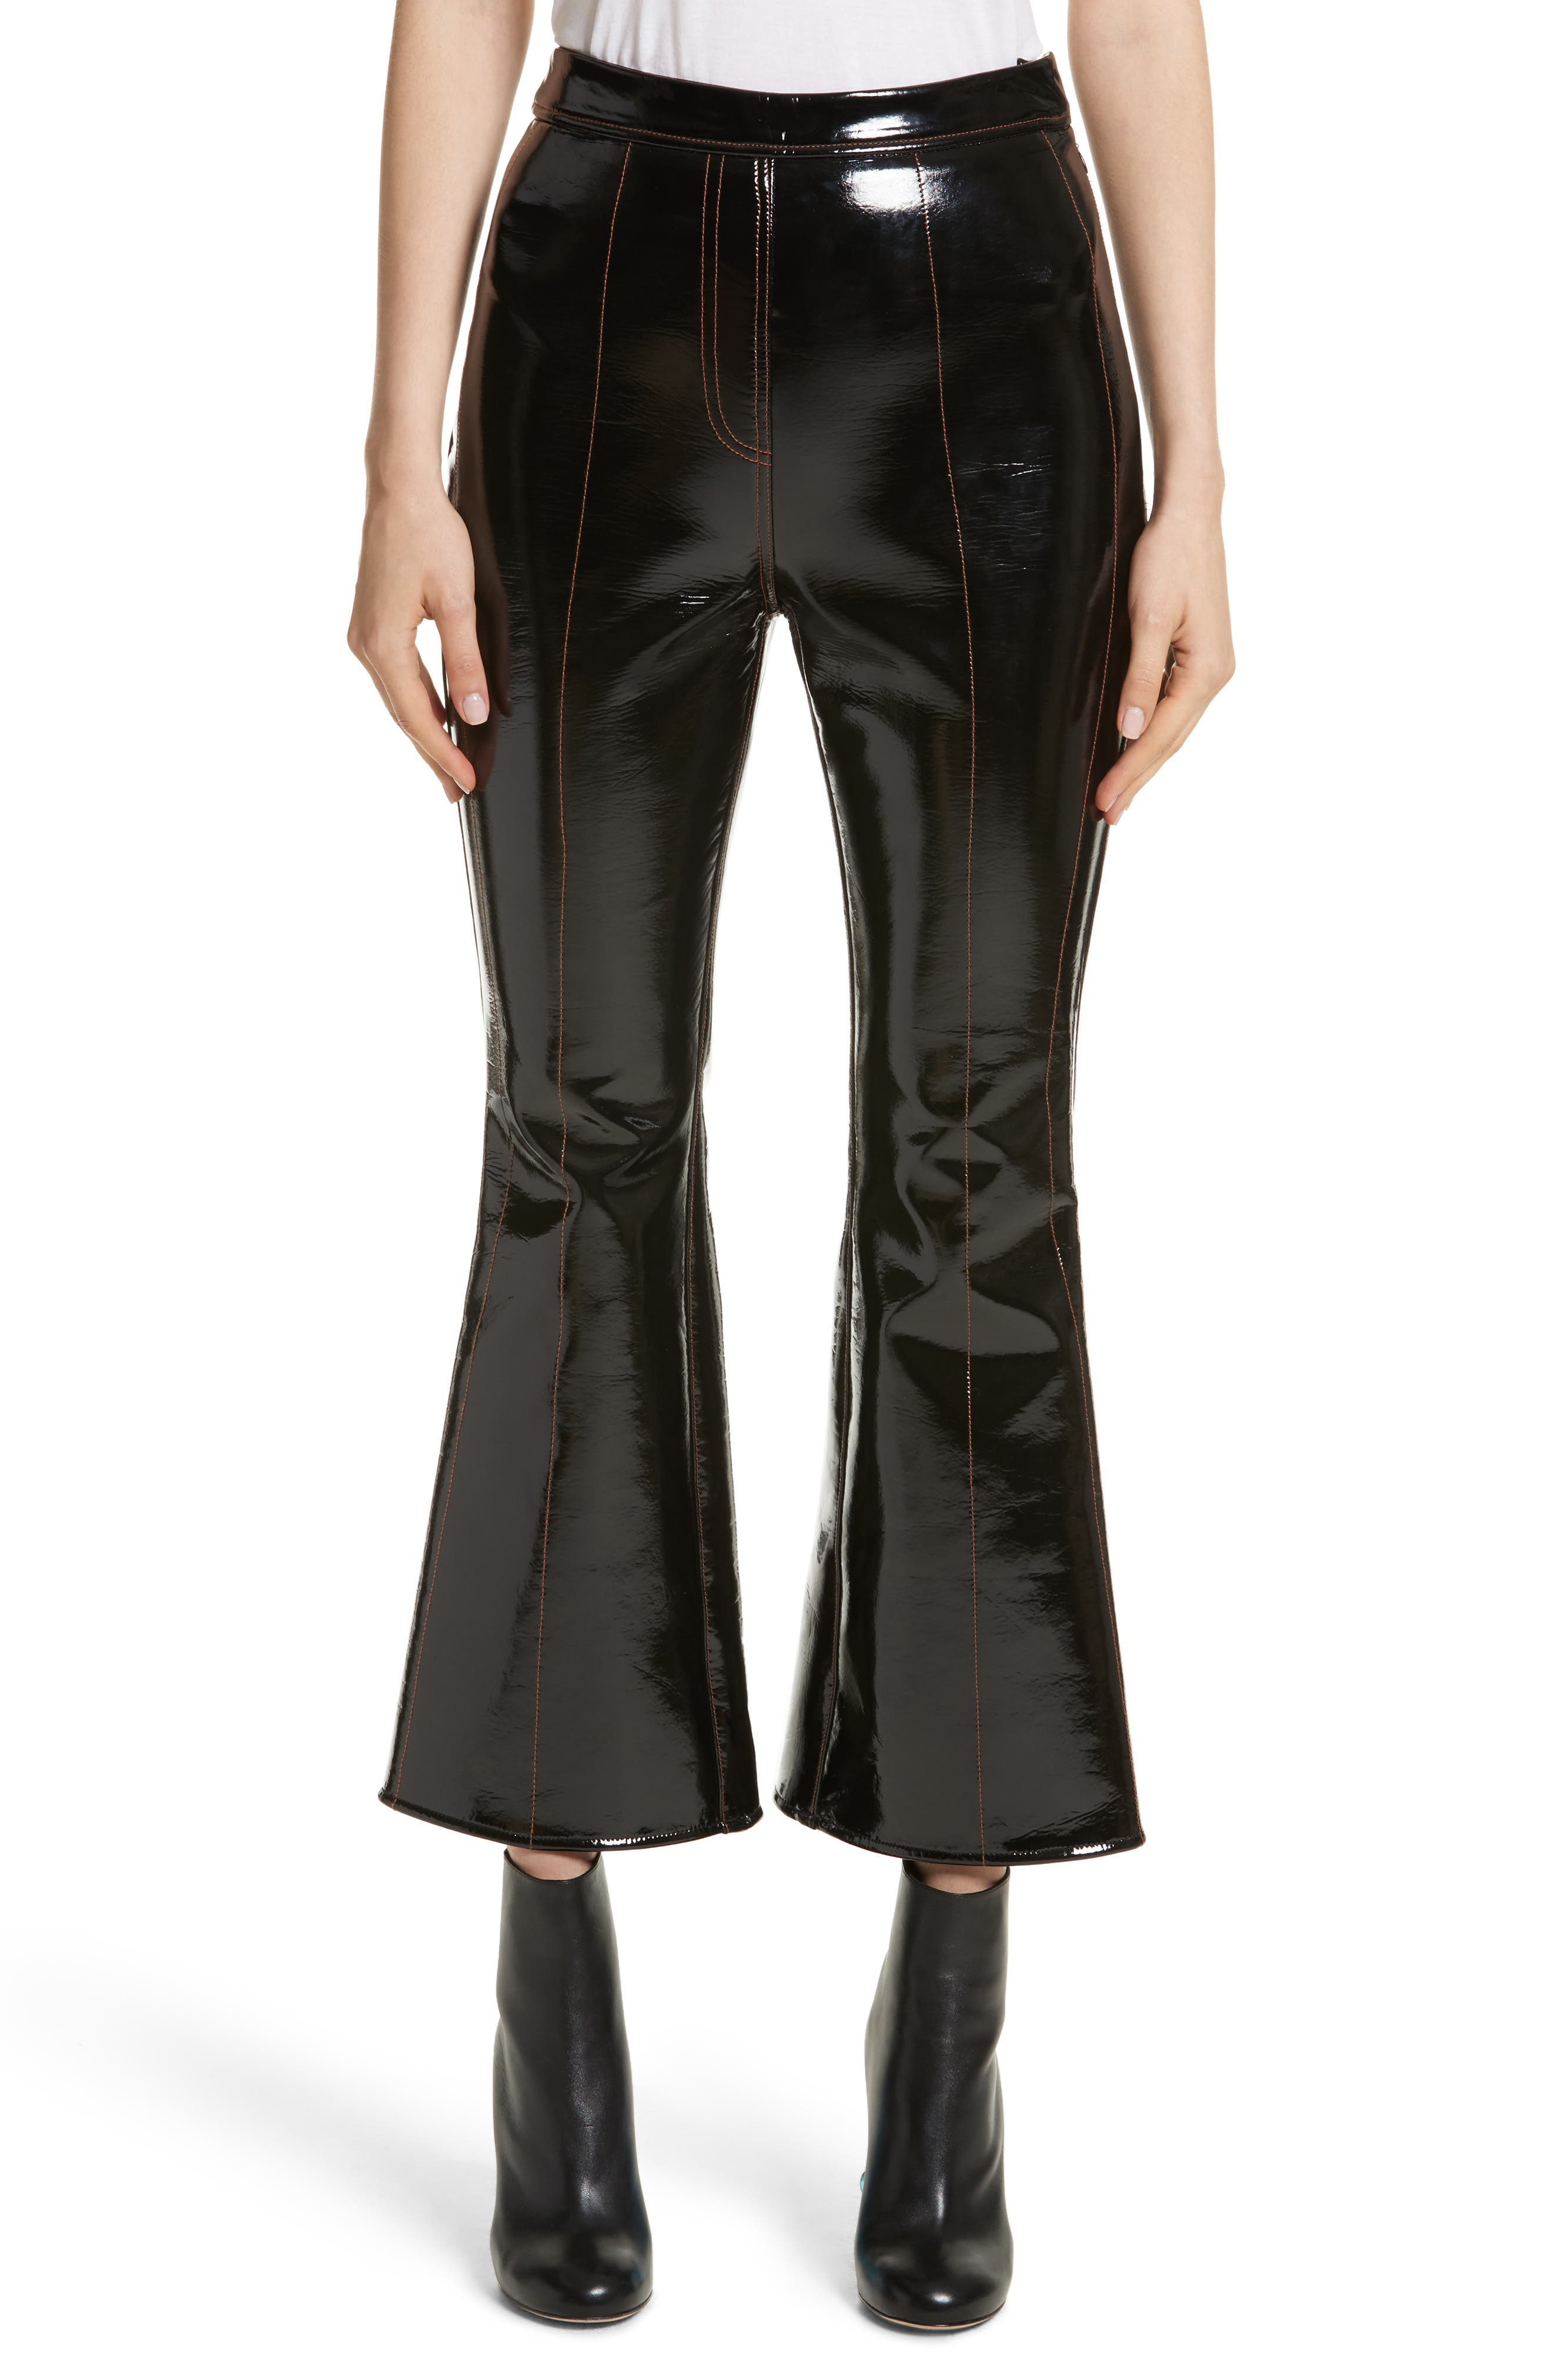 Outlaw Topstitched Crop Flare PVC Pants,                         Main,                         color, Black